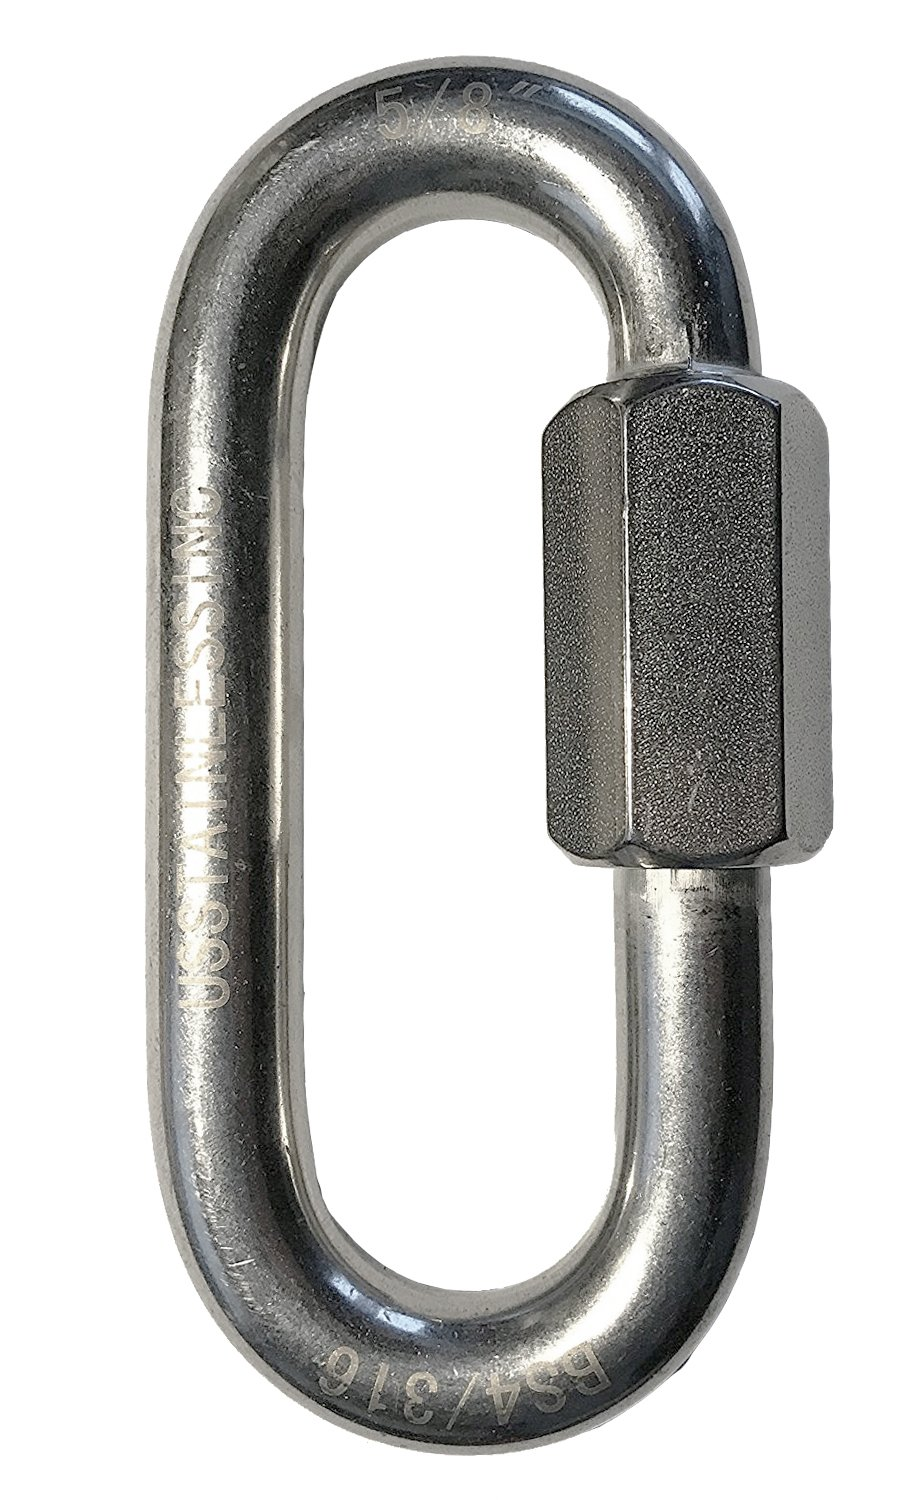 Stainless Steel 316 Quick Link 5/8'' (16mm) Marine Grade